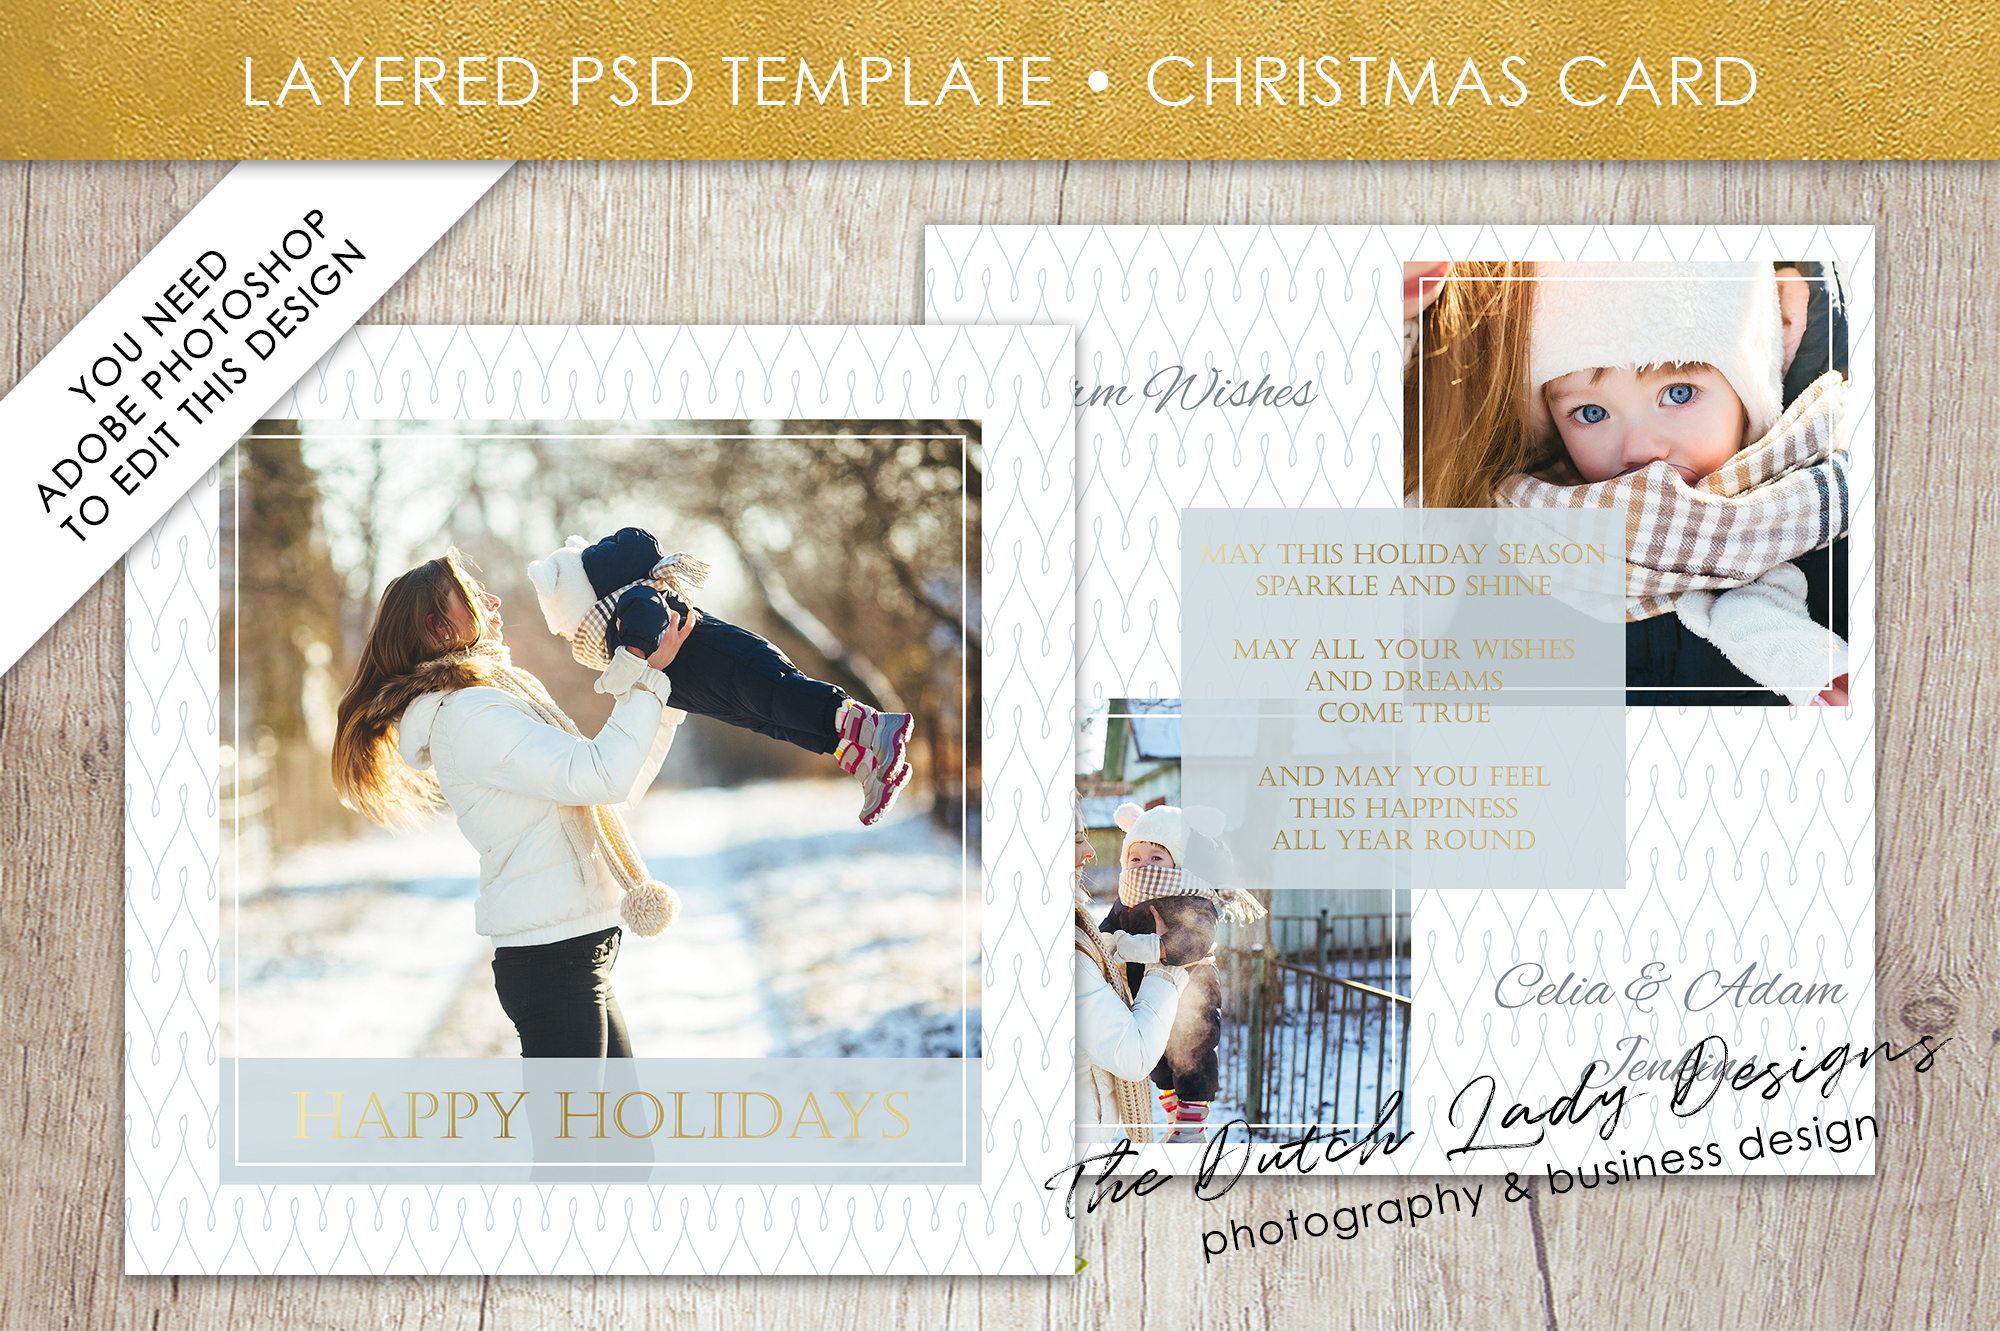 Psd Christmas Holidays Greetings Photo Card Graphic By